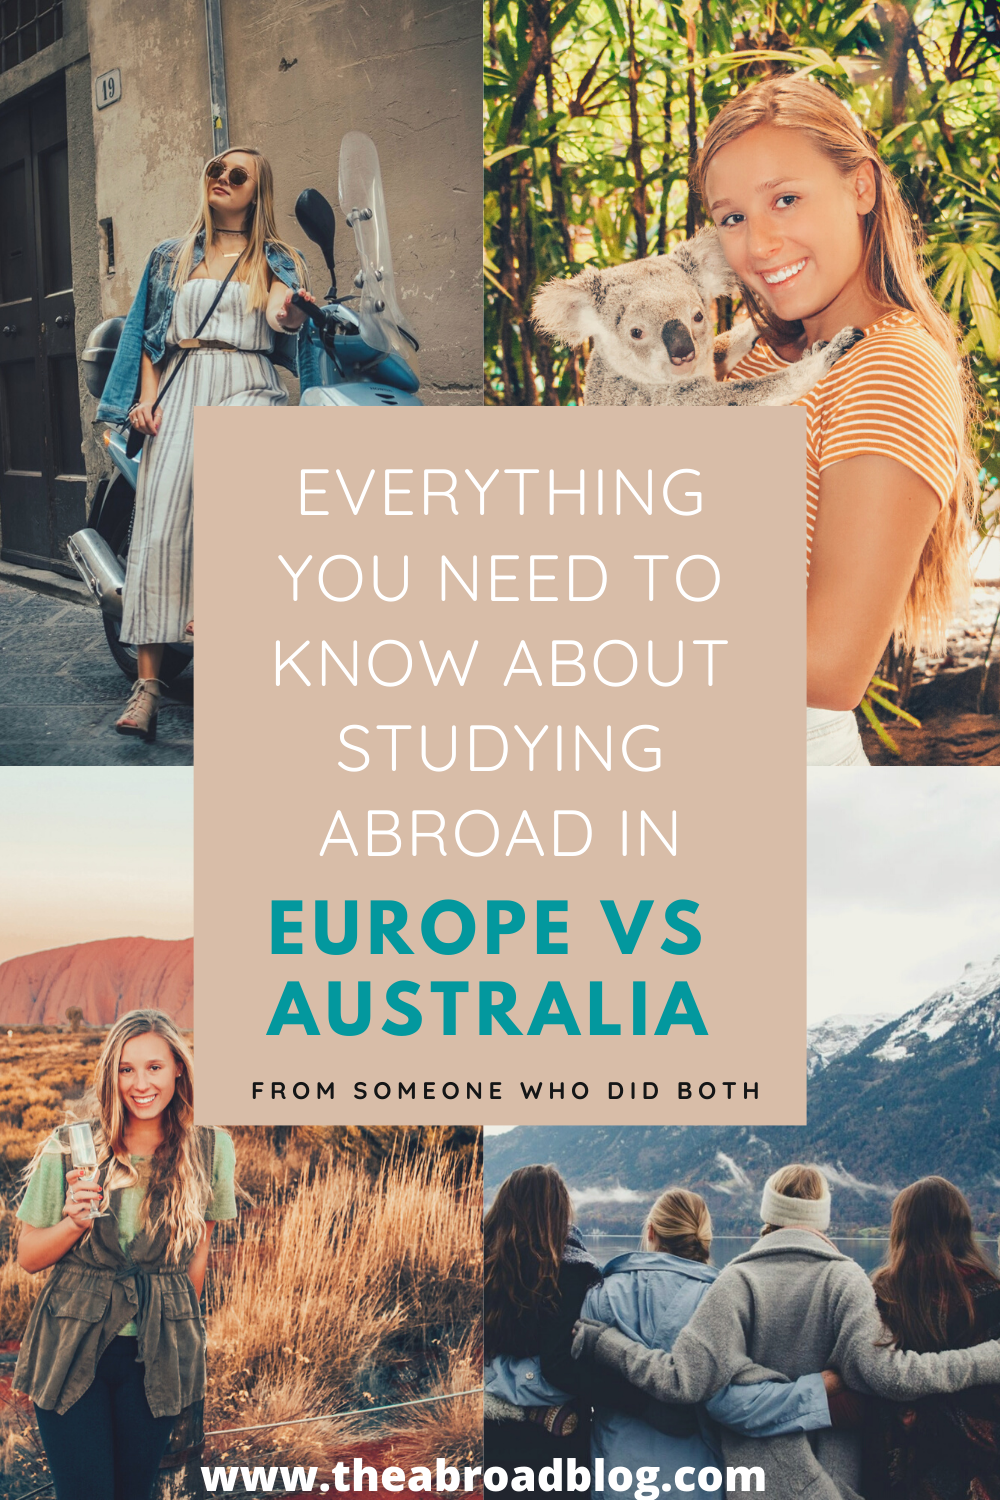 Everything you need to know about studying abroad in Europe vs. Australia from the girl who did both